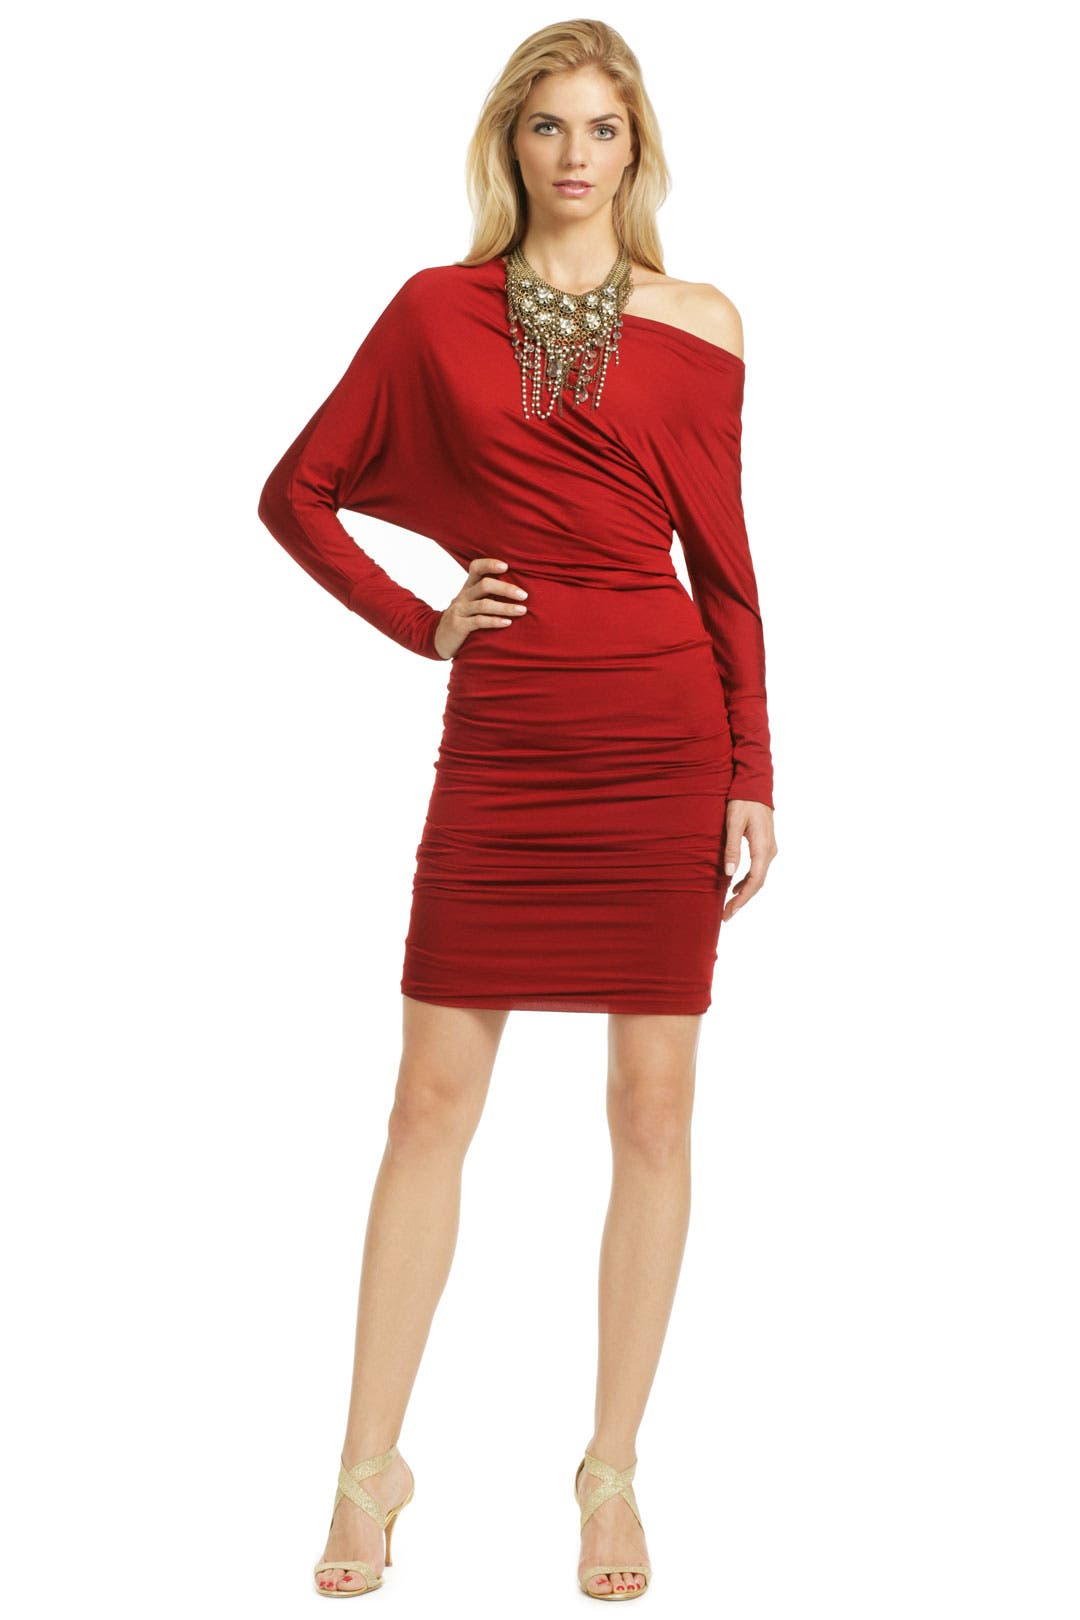 Temperature Rising Dress by Plein Sud